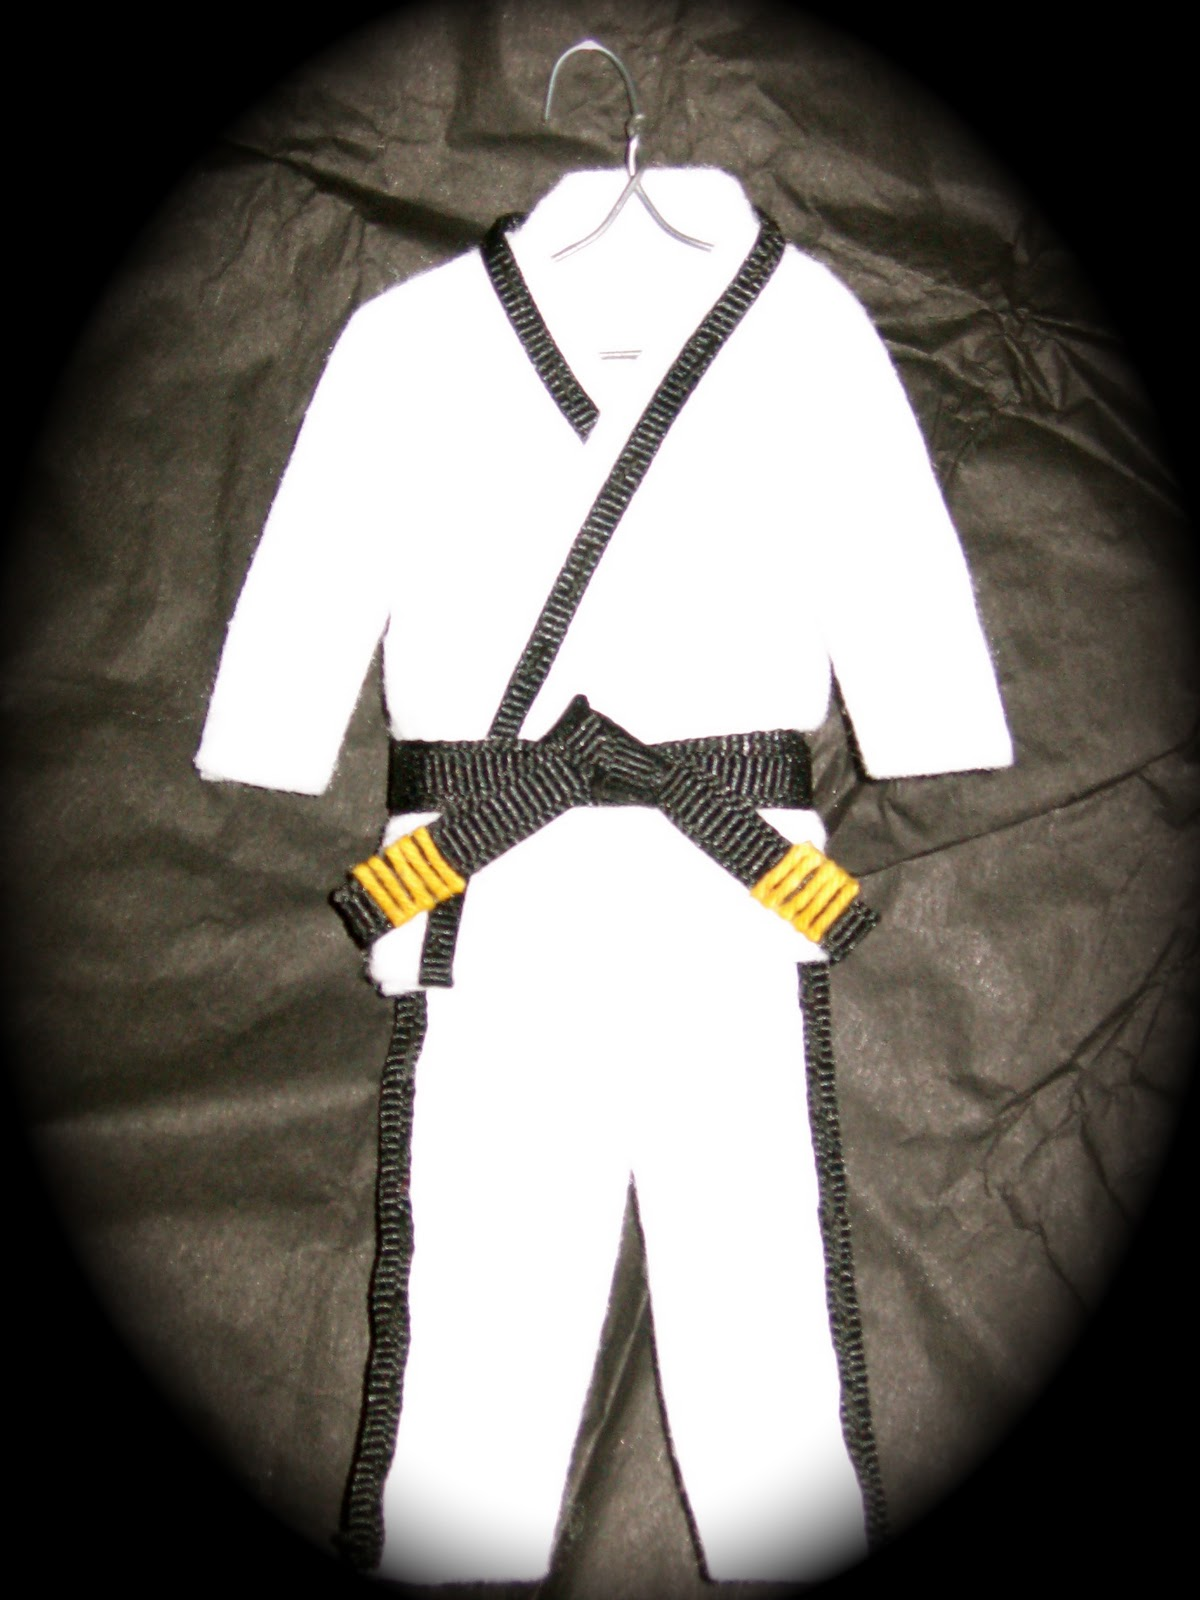 Karate christmas ornament - This Year My Children S Ornaments Have Been My Little Secret In Order To Surprise Them Christmas Morning They Are Time Consuming But I Enjoy Making These